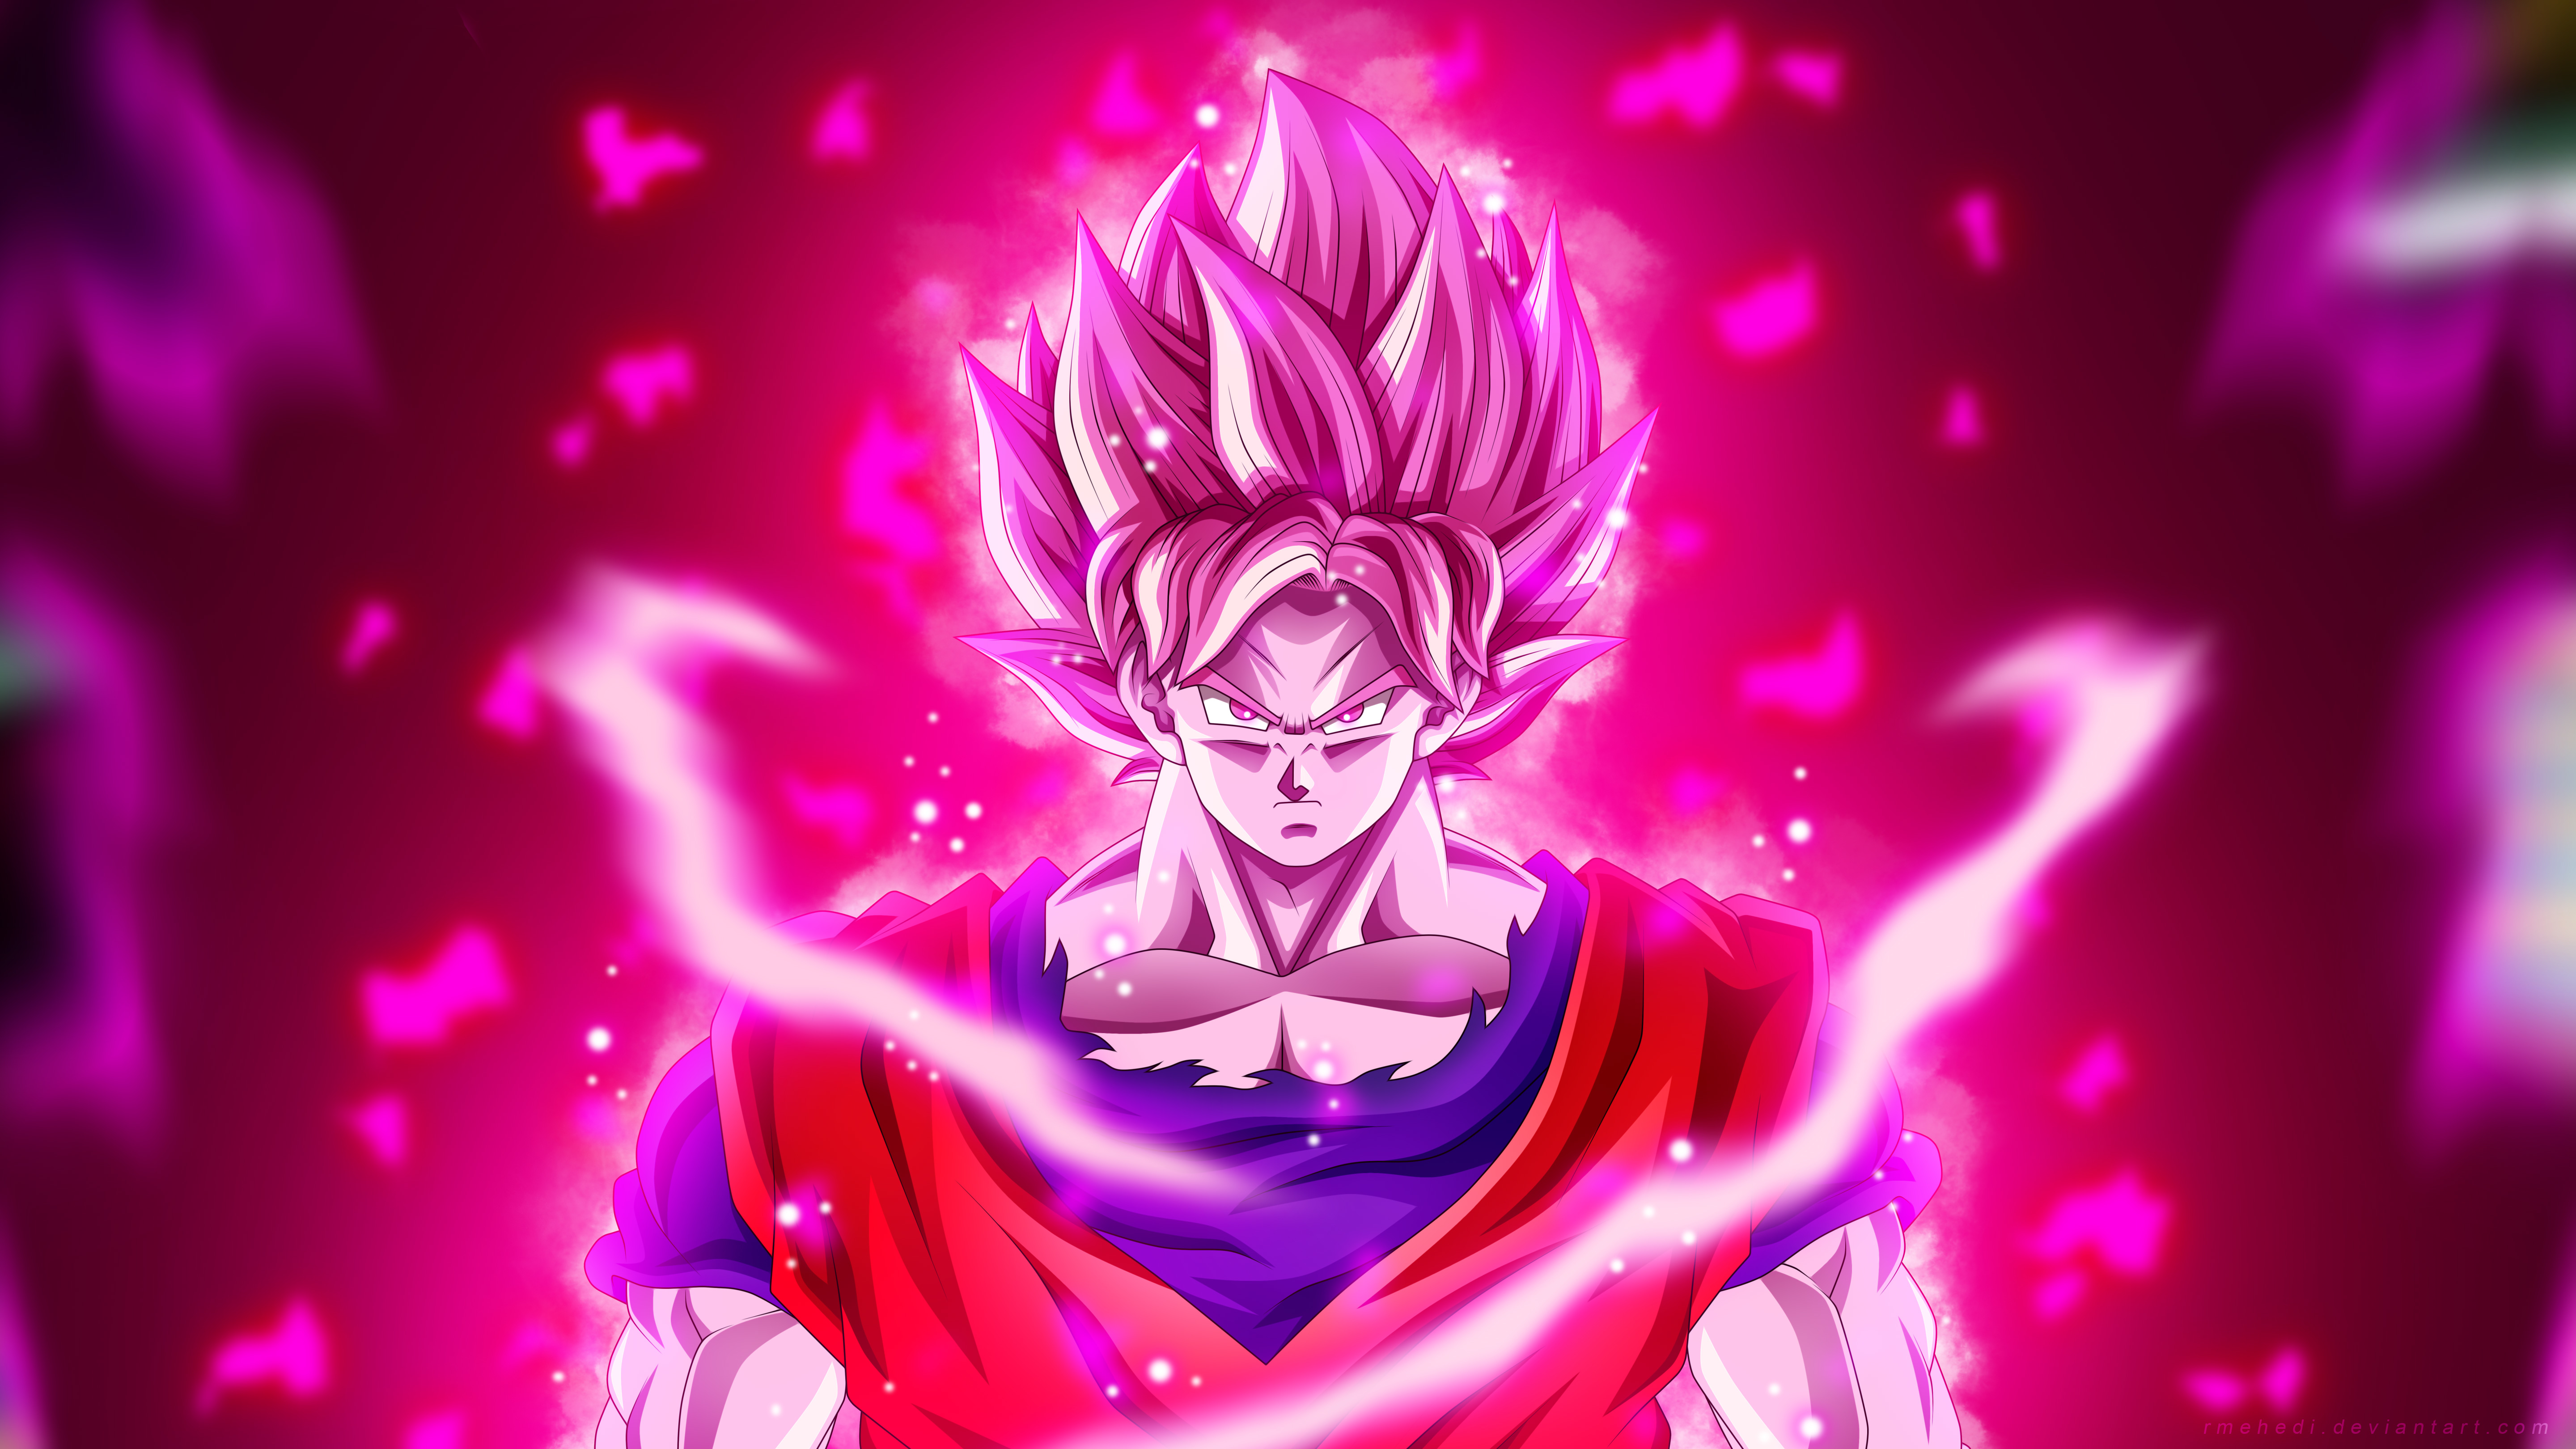 1080x2400 Goku Dragon Ball Super 1080x2400 Resolution Wallpaper Hd Anime 4k Wallpapers Images Photos And Background